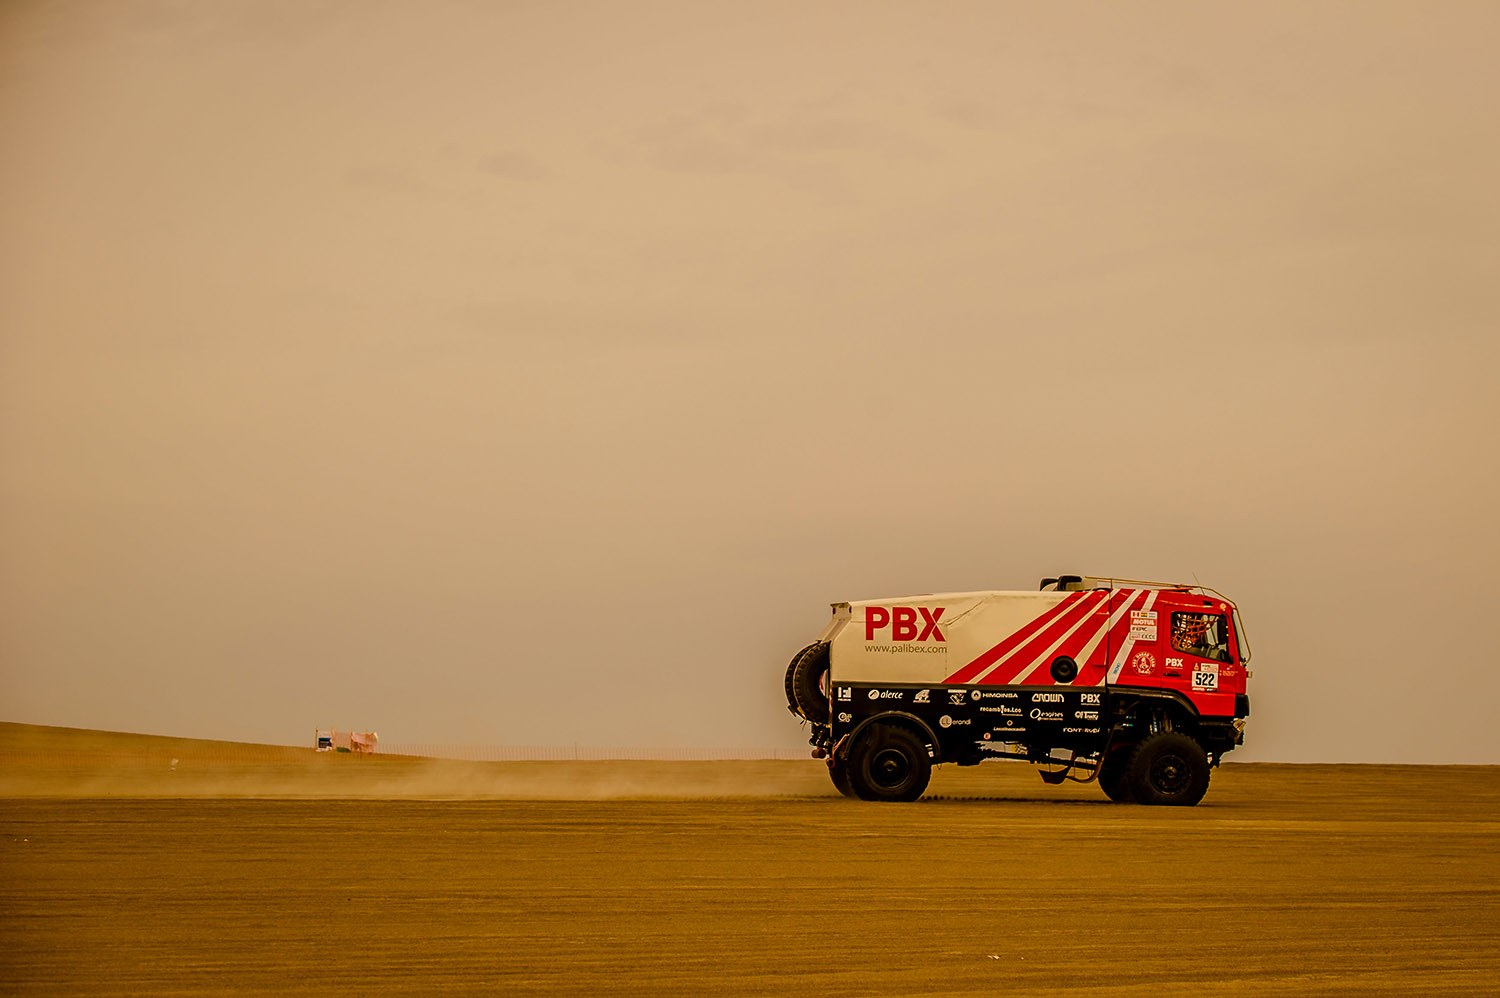 522-2018-01-06-PBX DAKAR 2018 TEAM (8)